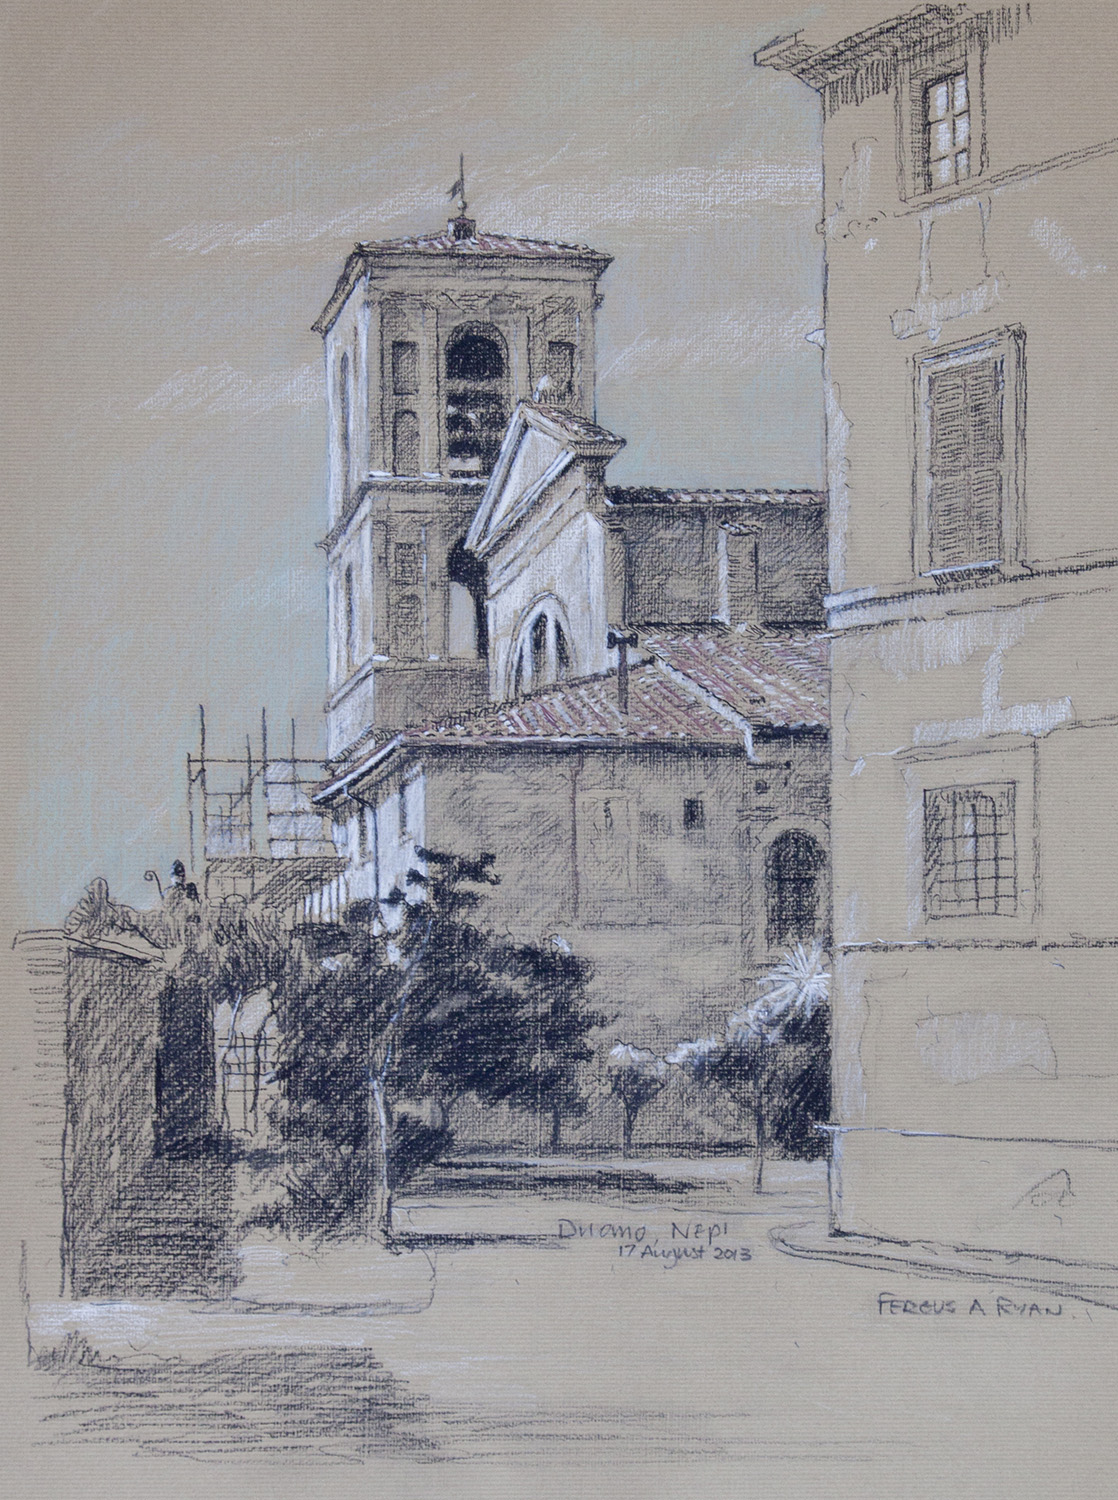 The Duomo At Nepi, charcoal, © Fergus A Ryan, 2013